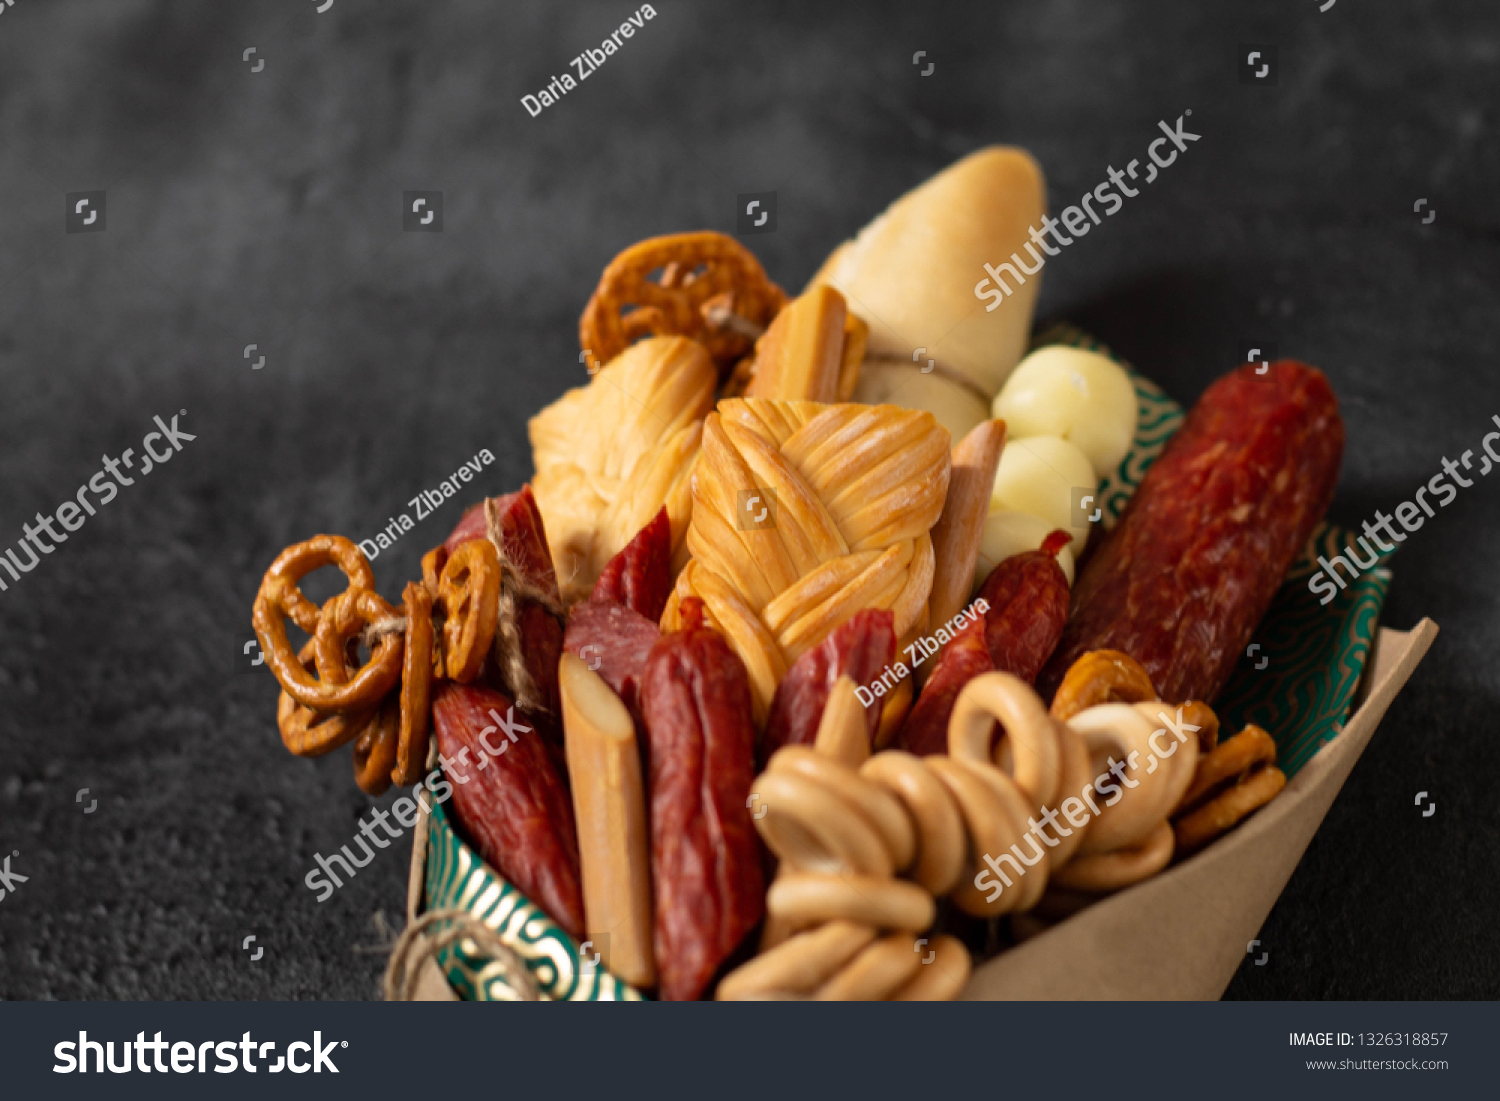 Original Edible Gift Form Bouquet Consisting Stock Photo Edit Now 1326318857